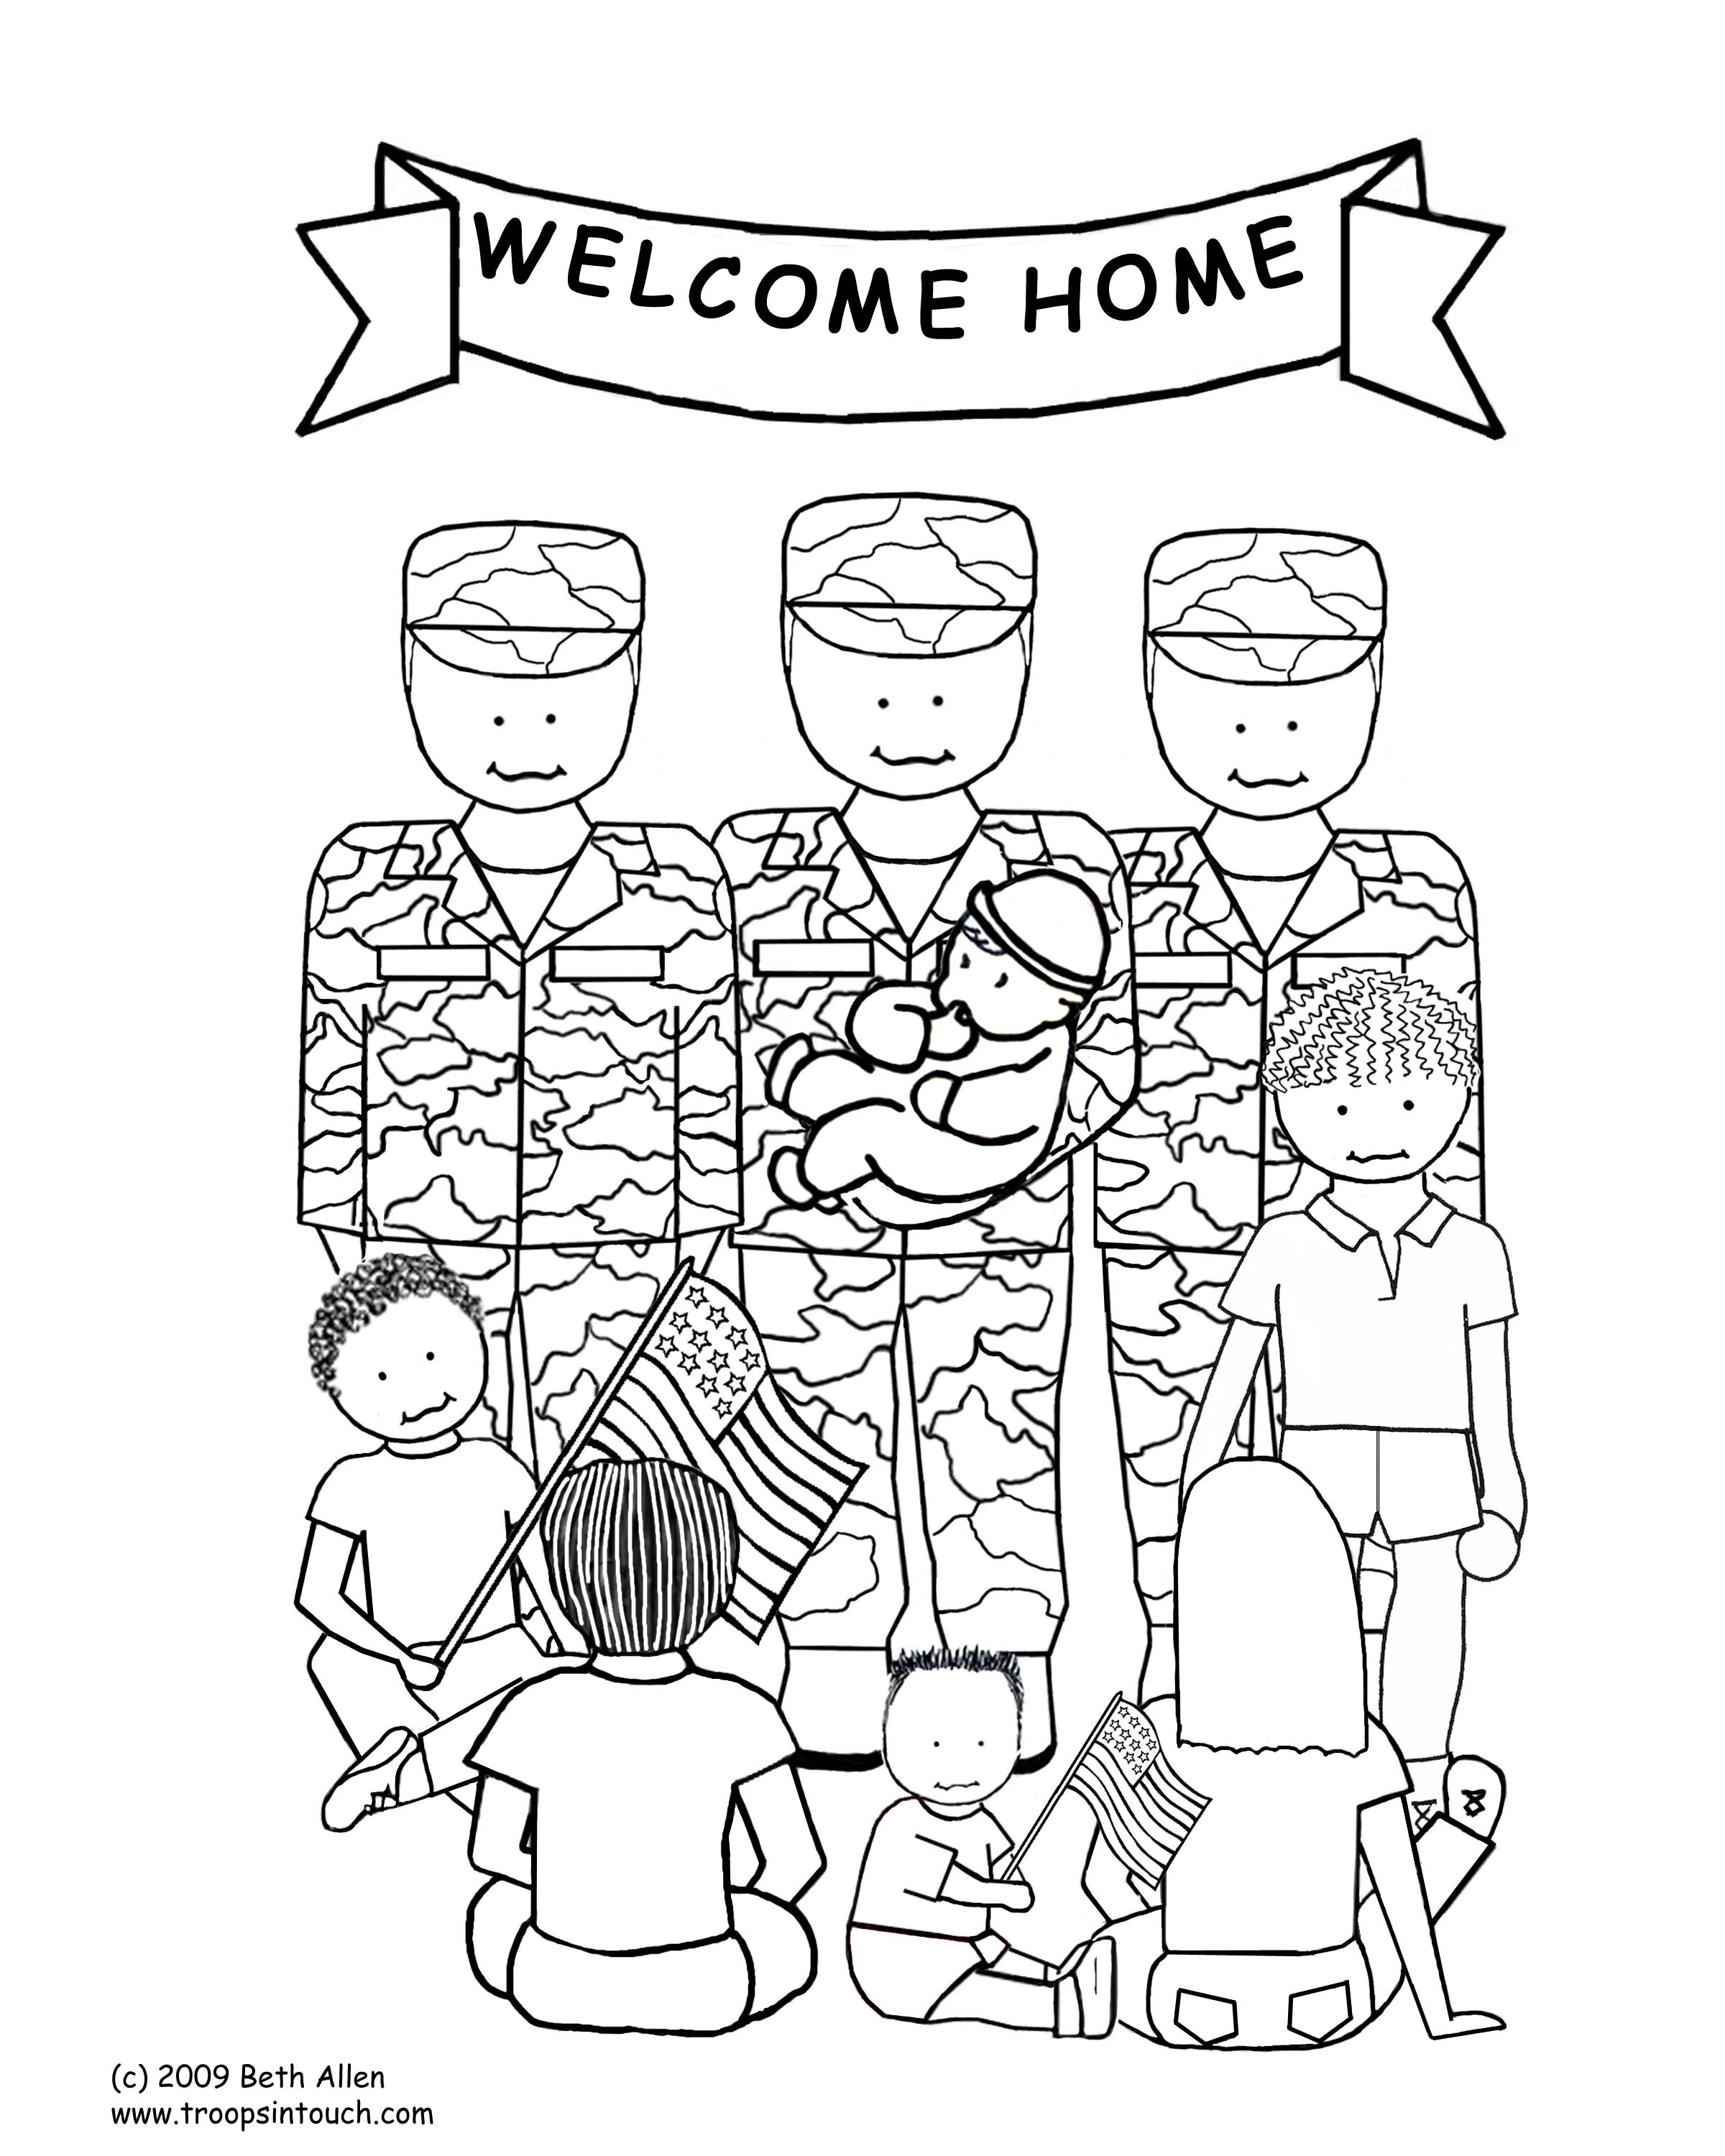 Coloring games of people - Welcome Home